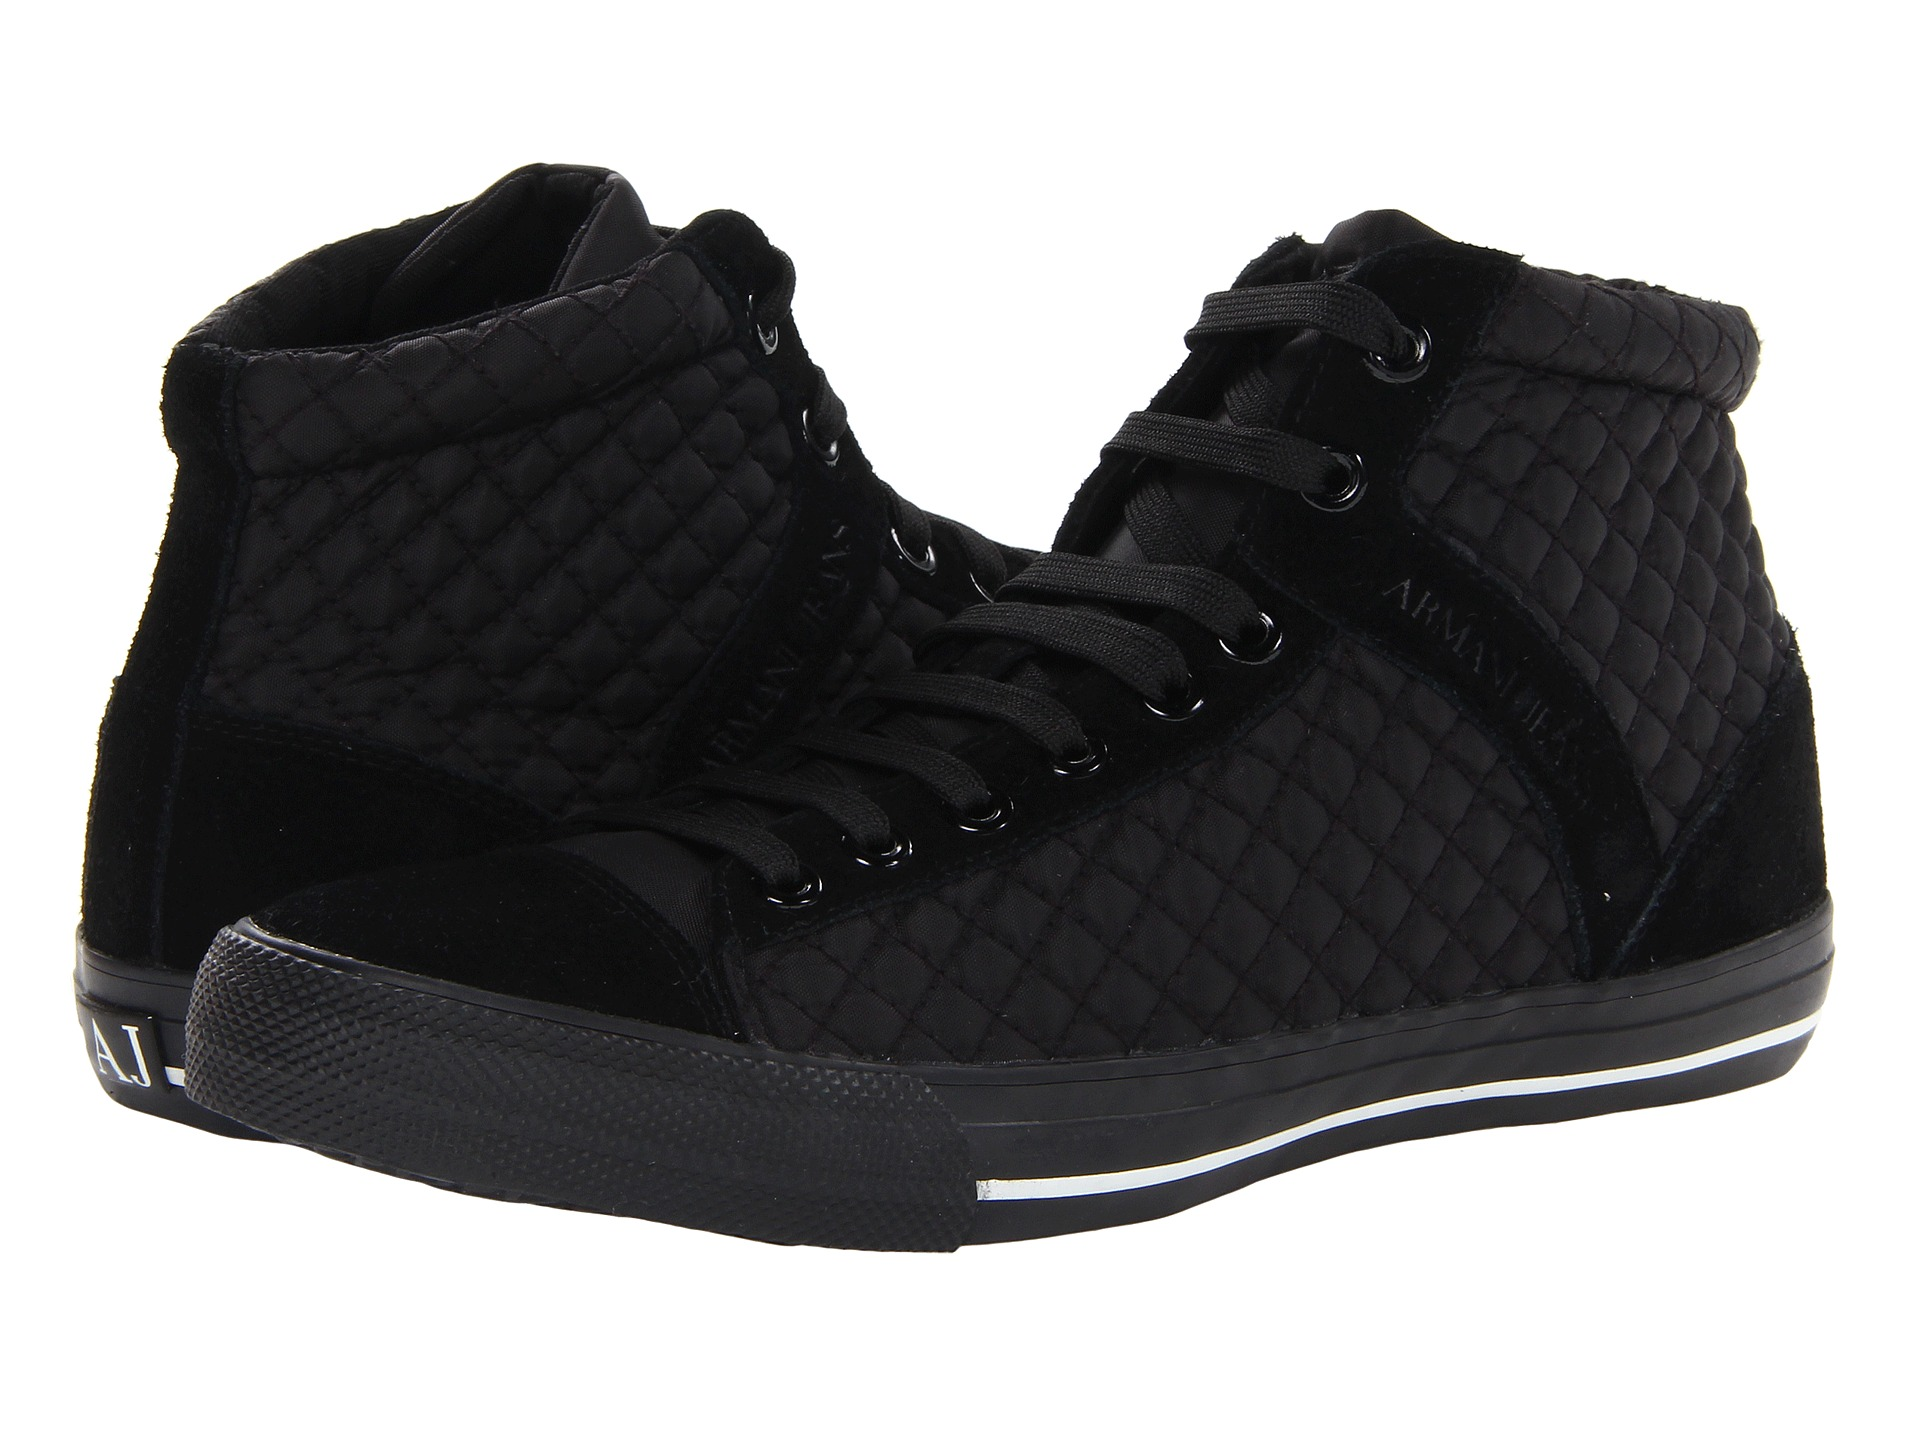 Мужские кроссовки (кеды) Armani Jeans Quilted High Top Sneaker.  Мужские кроссовки (кеды) Timberland TiTAN Oxford...